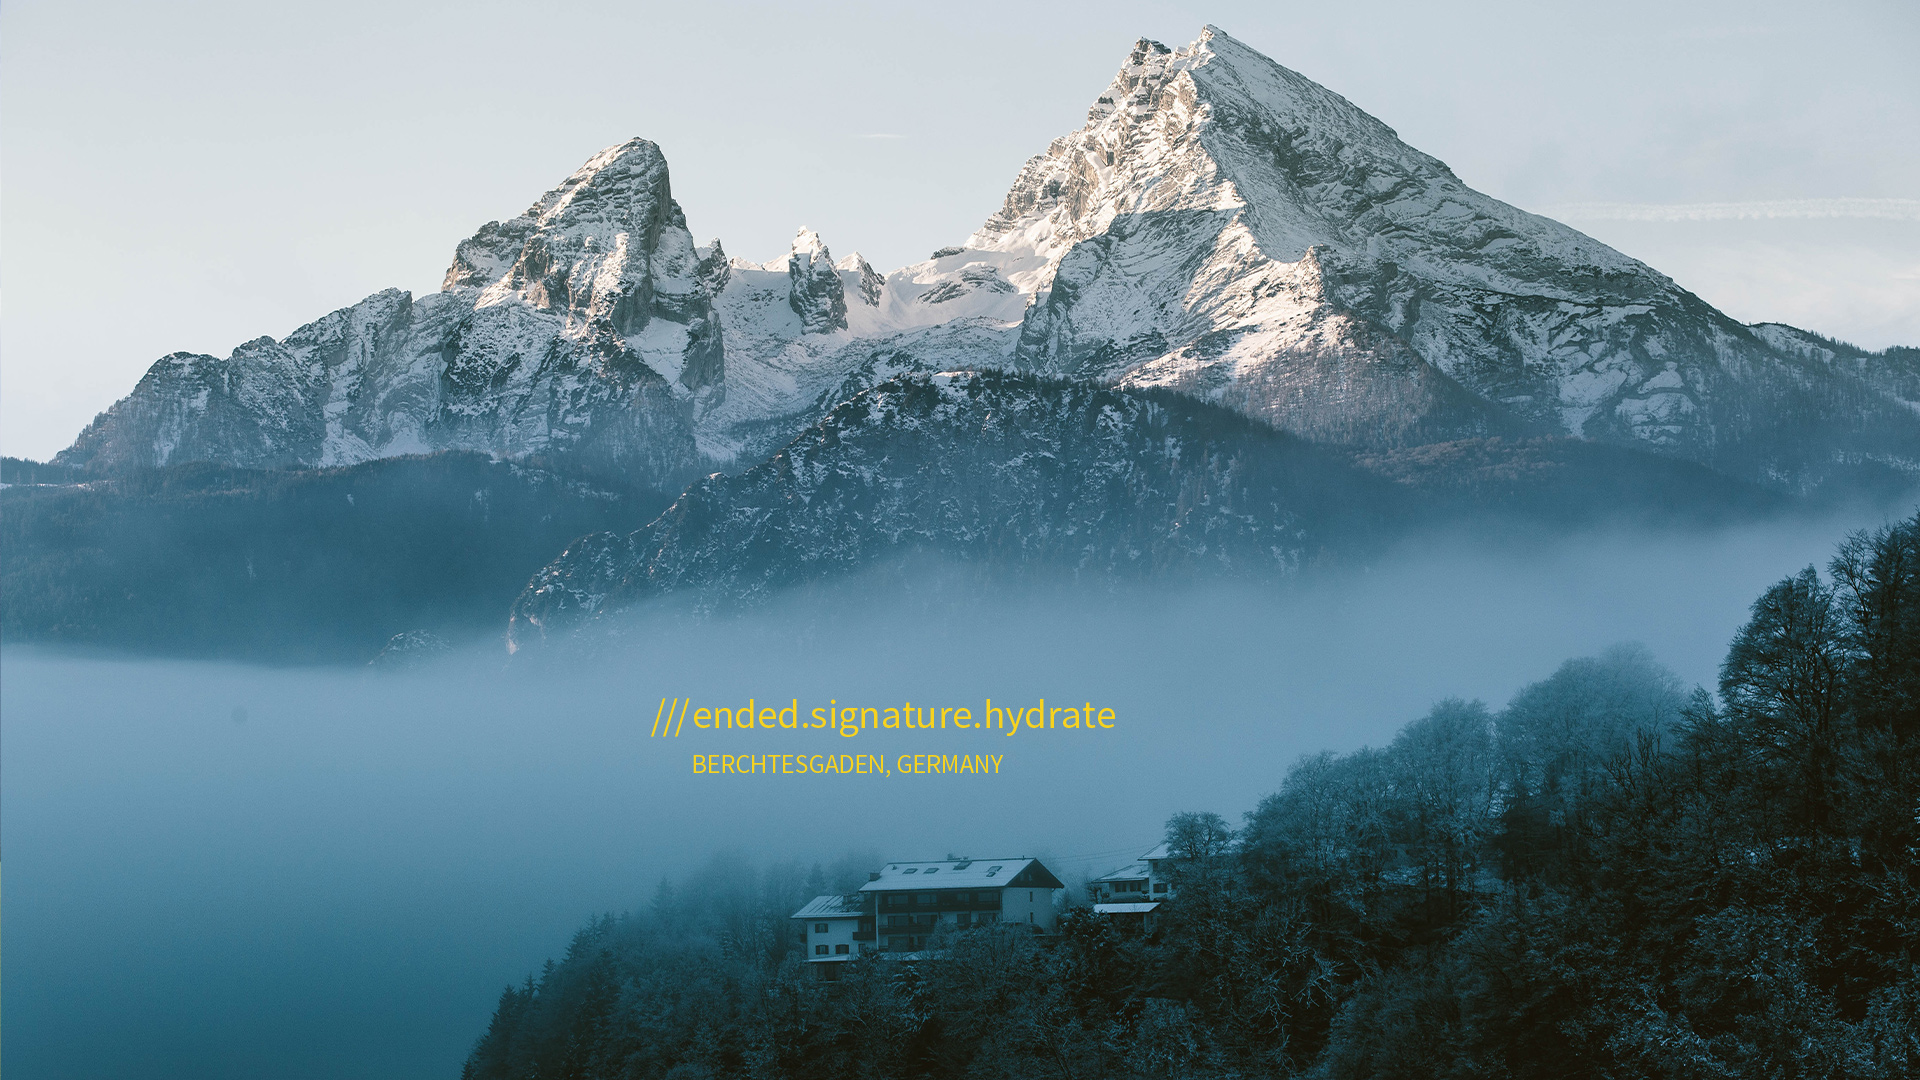 View of Watzmann Mountain at 3 words dress ended.signature.hydrate